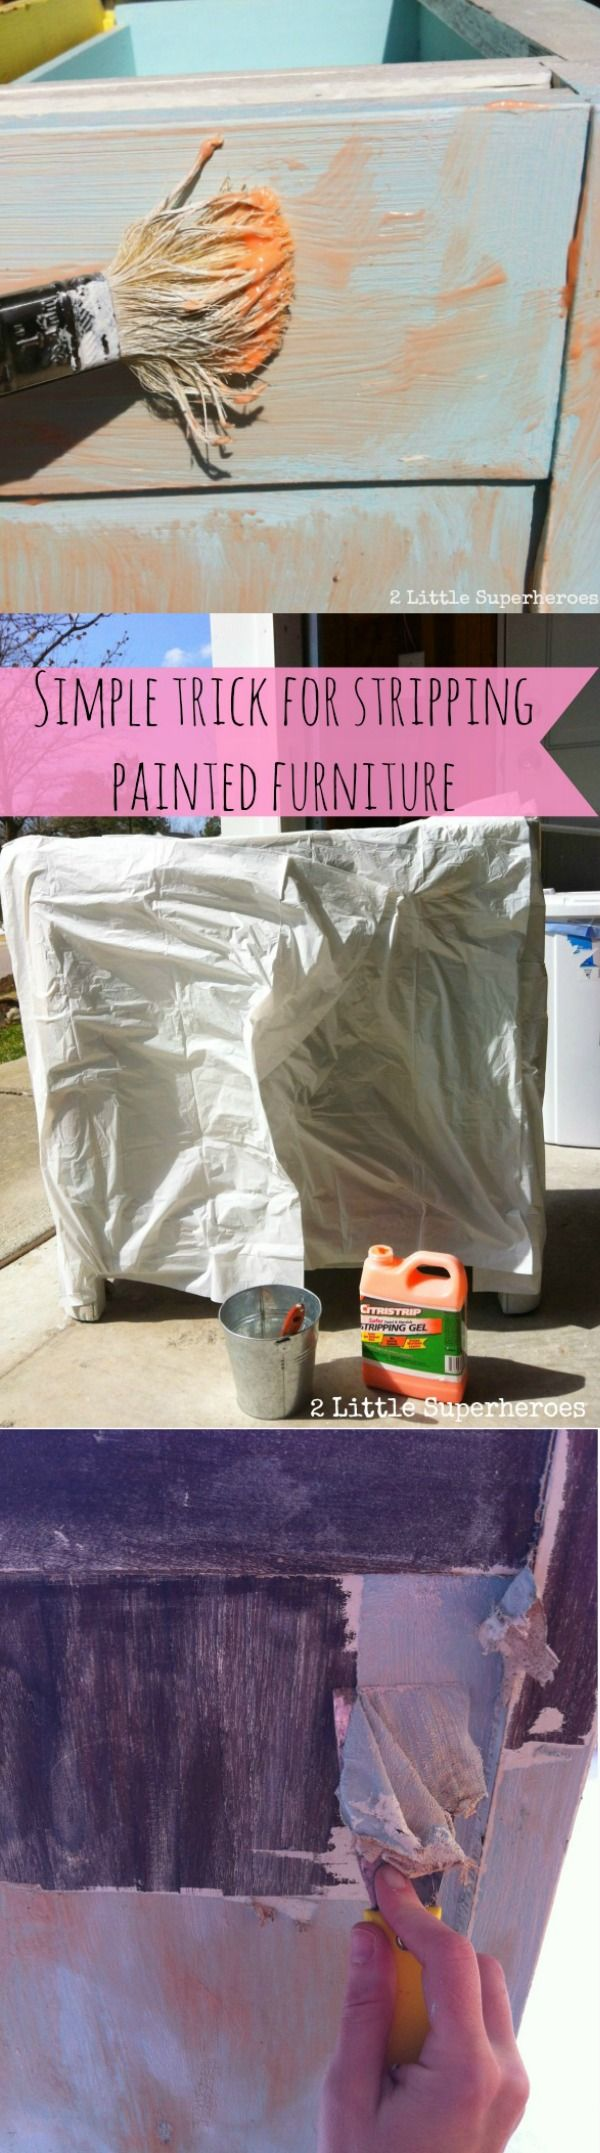 Strip that old paint off - This is the best tip for easily removing layers of old paint from furniture. You won't believe how simple this is!